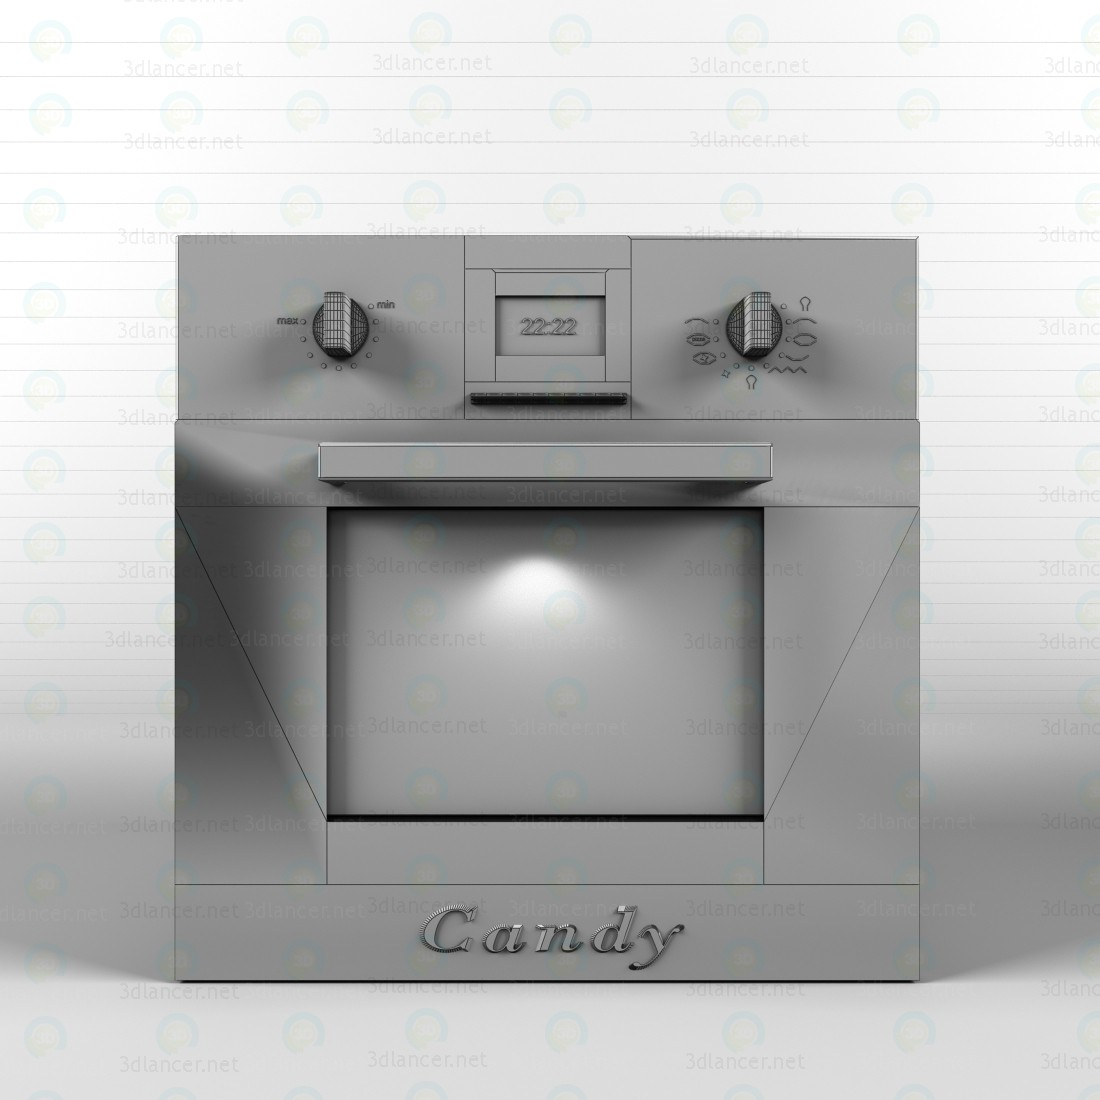 3d Oven, hob, extractor fan model buy - render